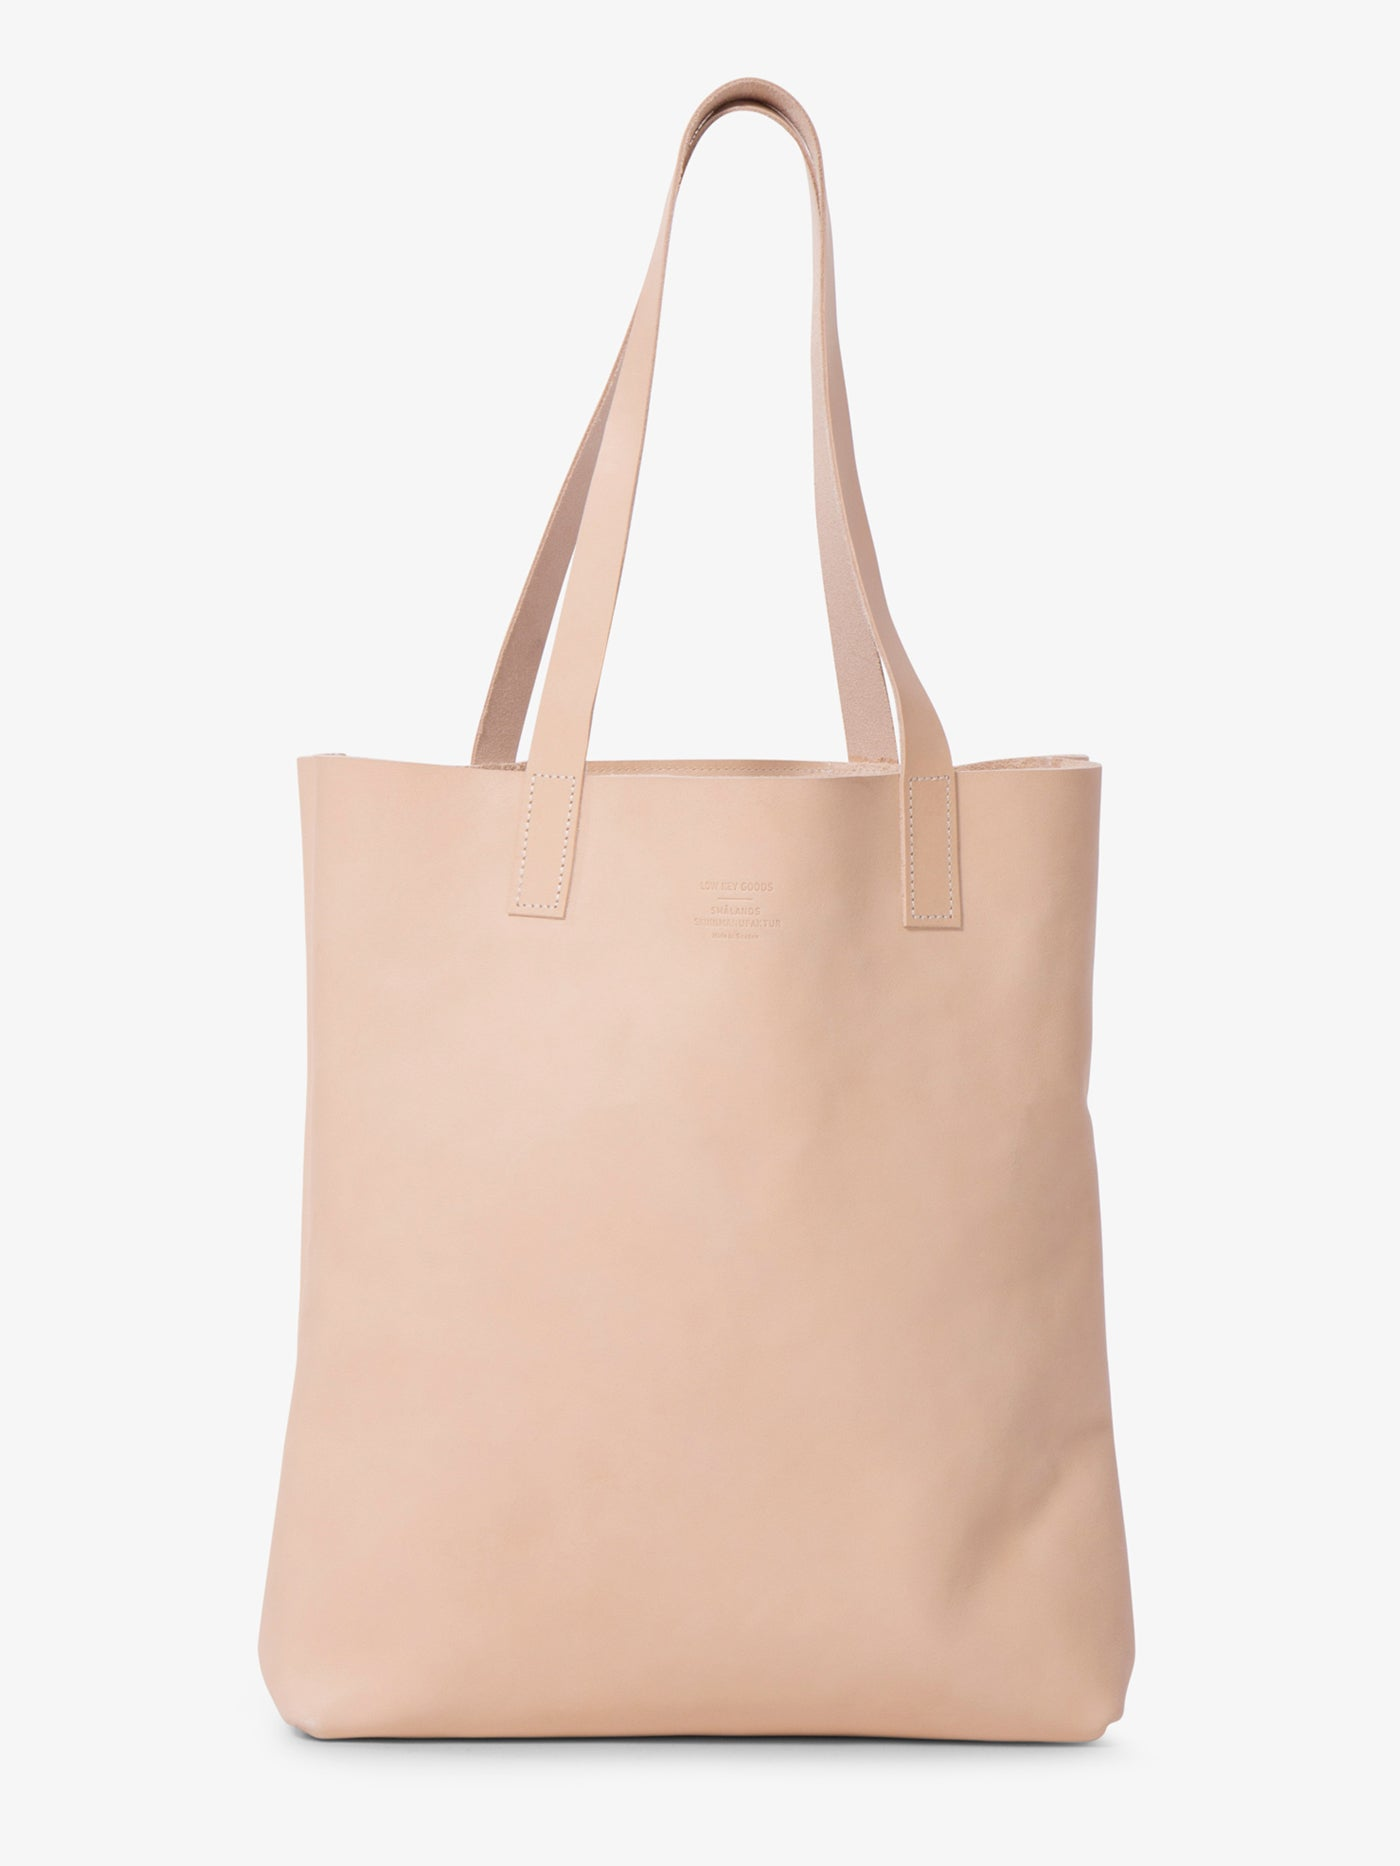 Tote Bag Low key goods